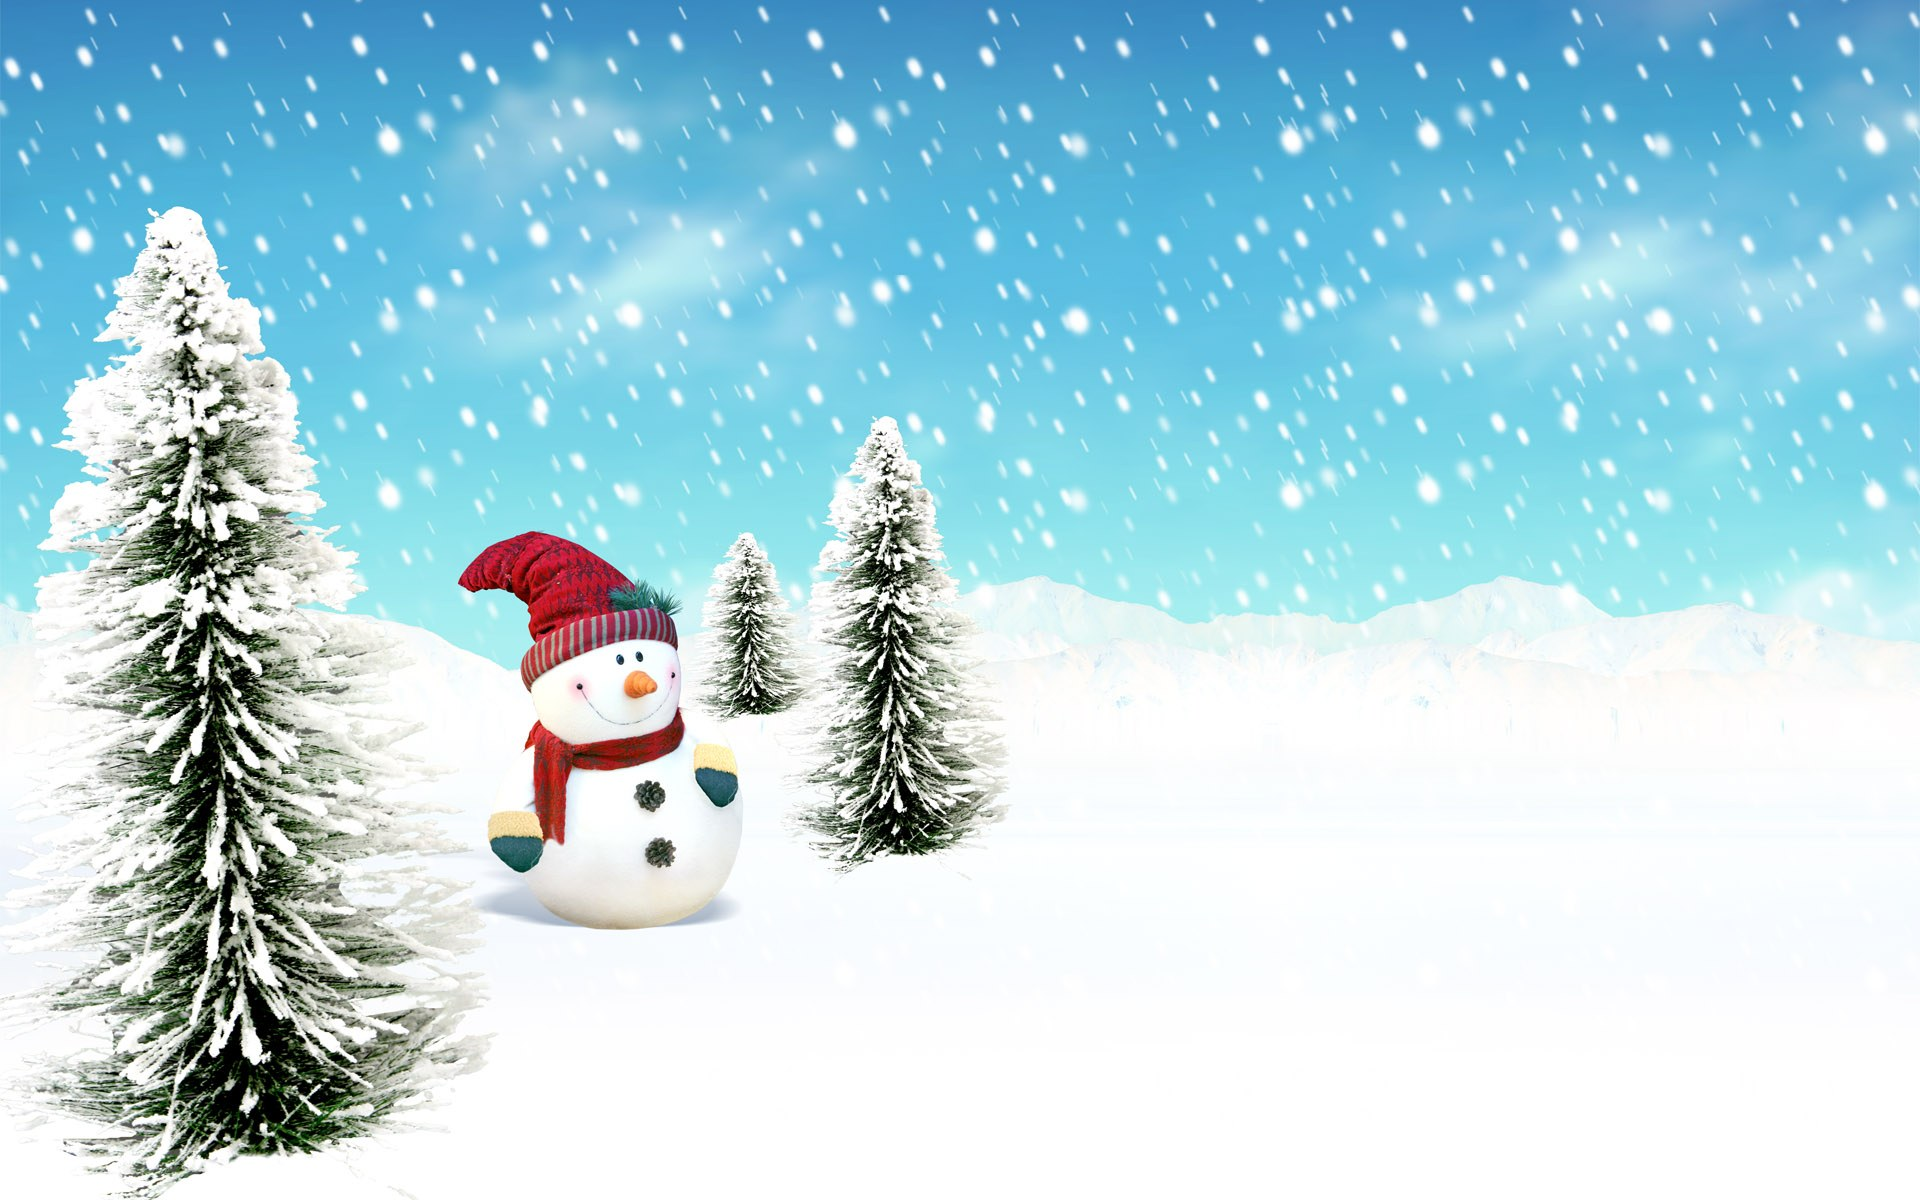 Christmas Background HD Desktop Wallpaper 16304 - Baltana